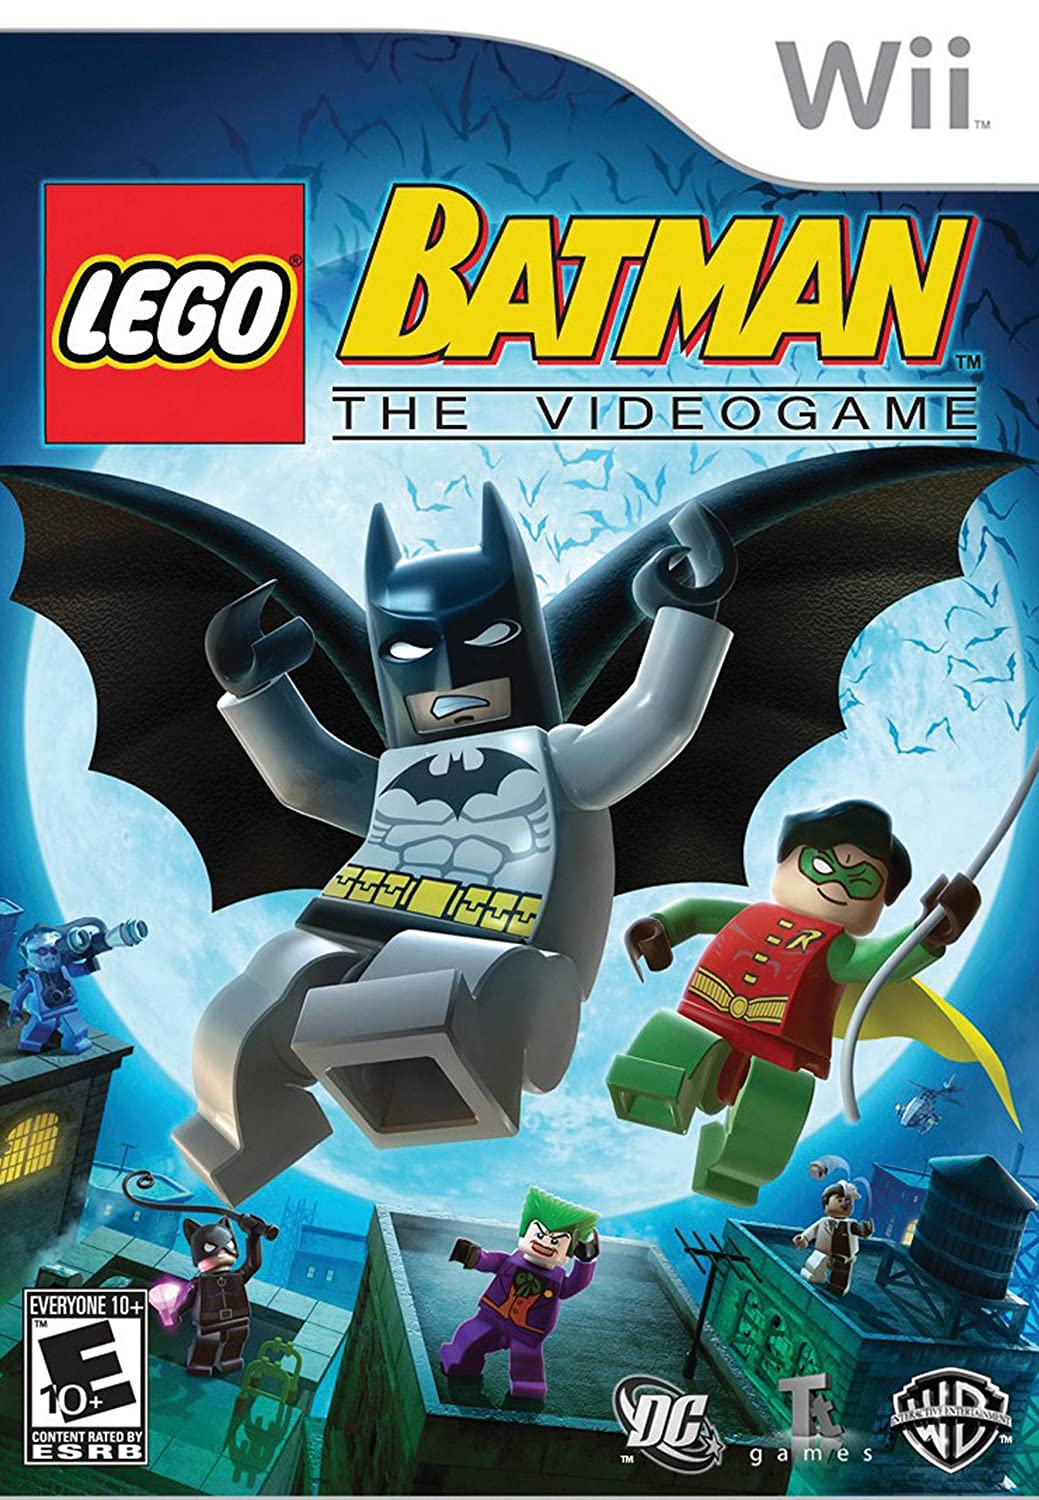 LEGO Batman The Videogame (2008 Video Game)